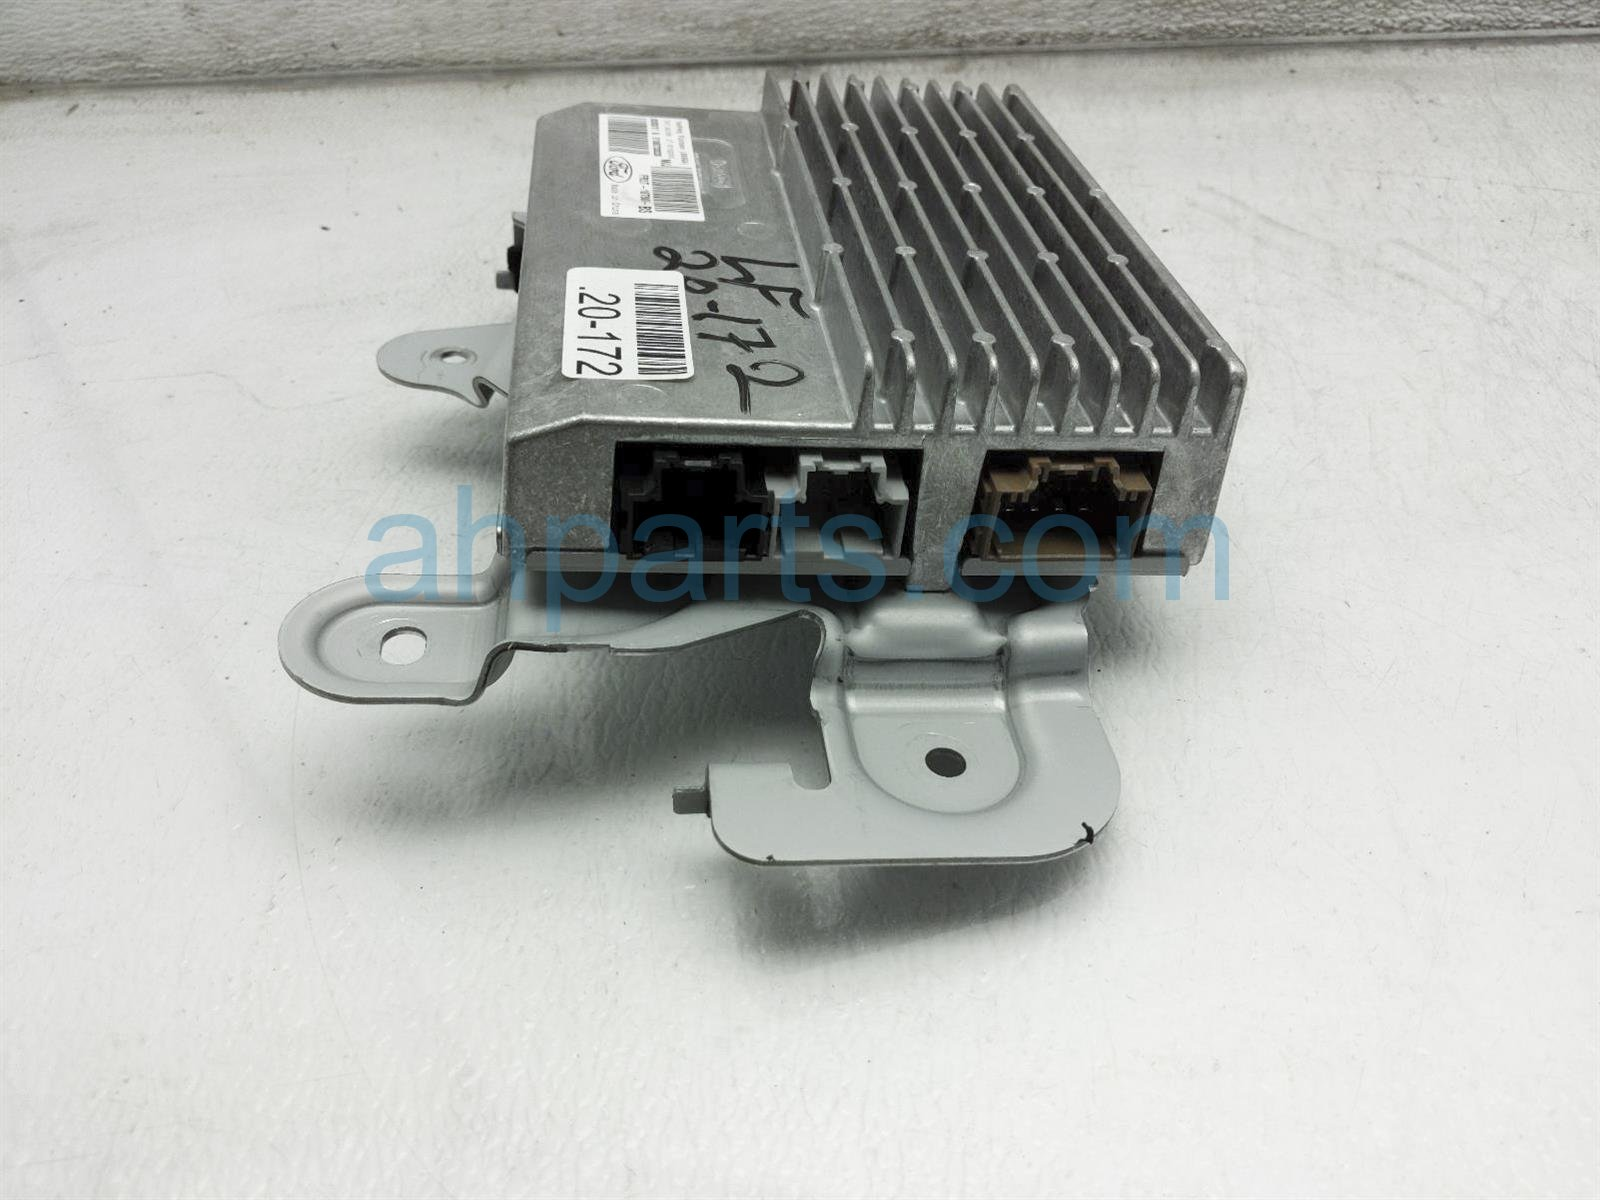 2017 Ford Mustang Shaker Audio Amplifier HR3Z 18B849 AA Replacement